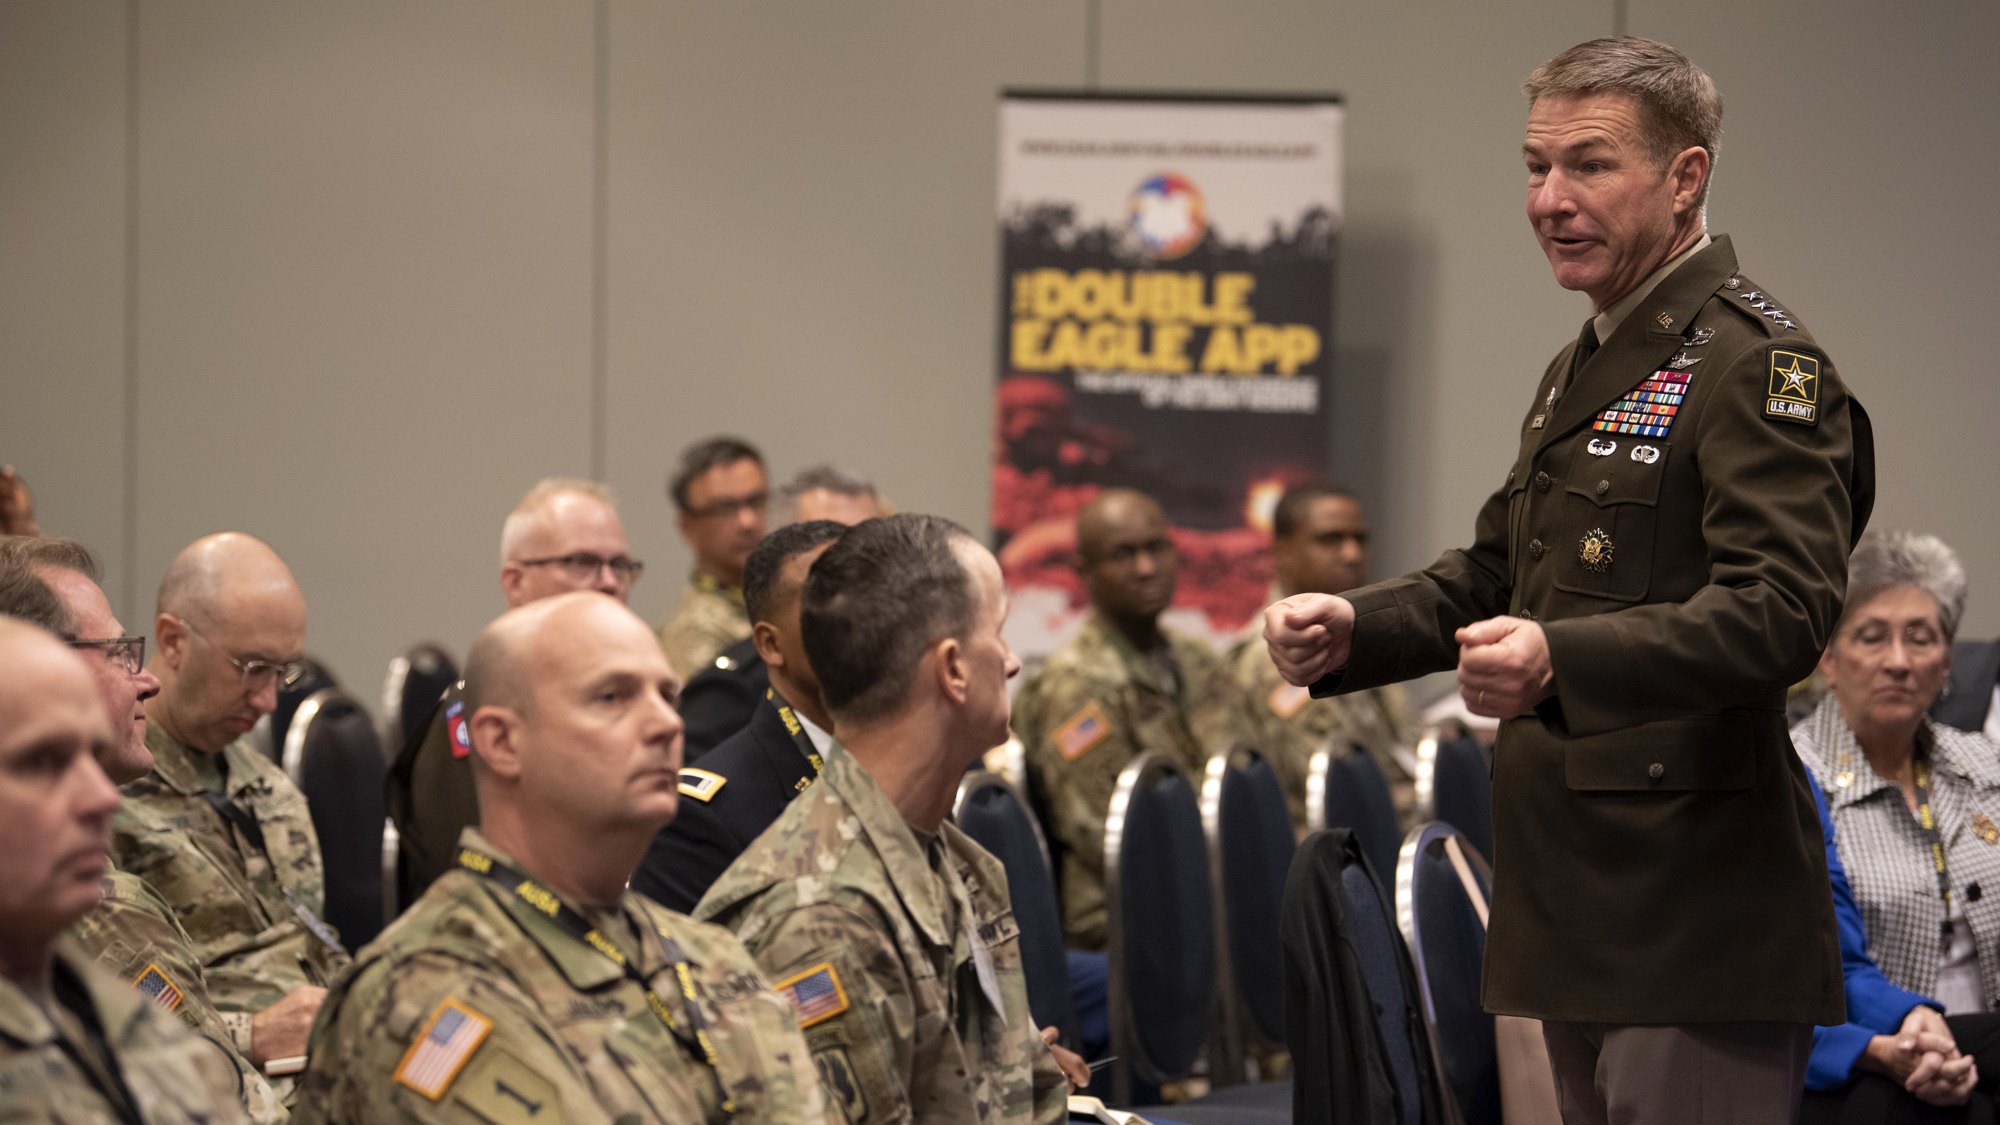 Army culture could be an obstacle as the service works to overhaul its talent management system, an Army expert said. Talent management is a top priority for Army Chief of Staff Gen. James McConville.